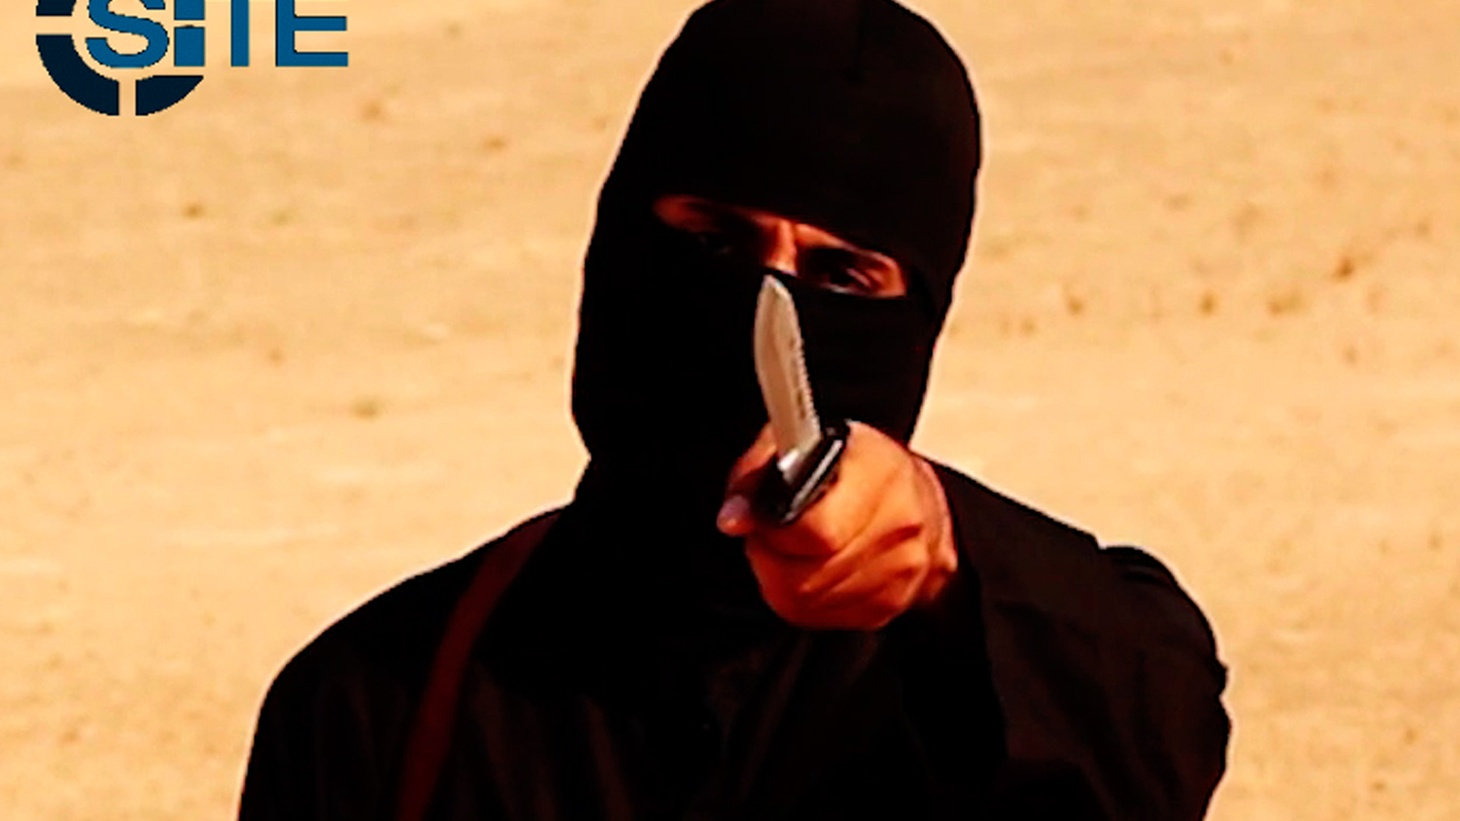 """The ISIS fighter known as """"Jihadi John"""" has been identified as a British national named Mohammed Emwazi. What do we know about him? Also, why are so many Westerners getting radicalized by ISIS?"""